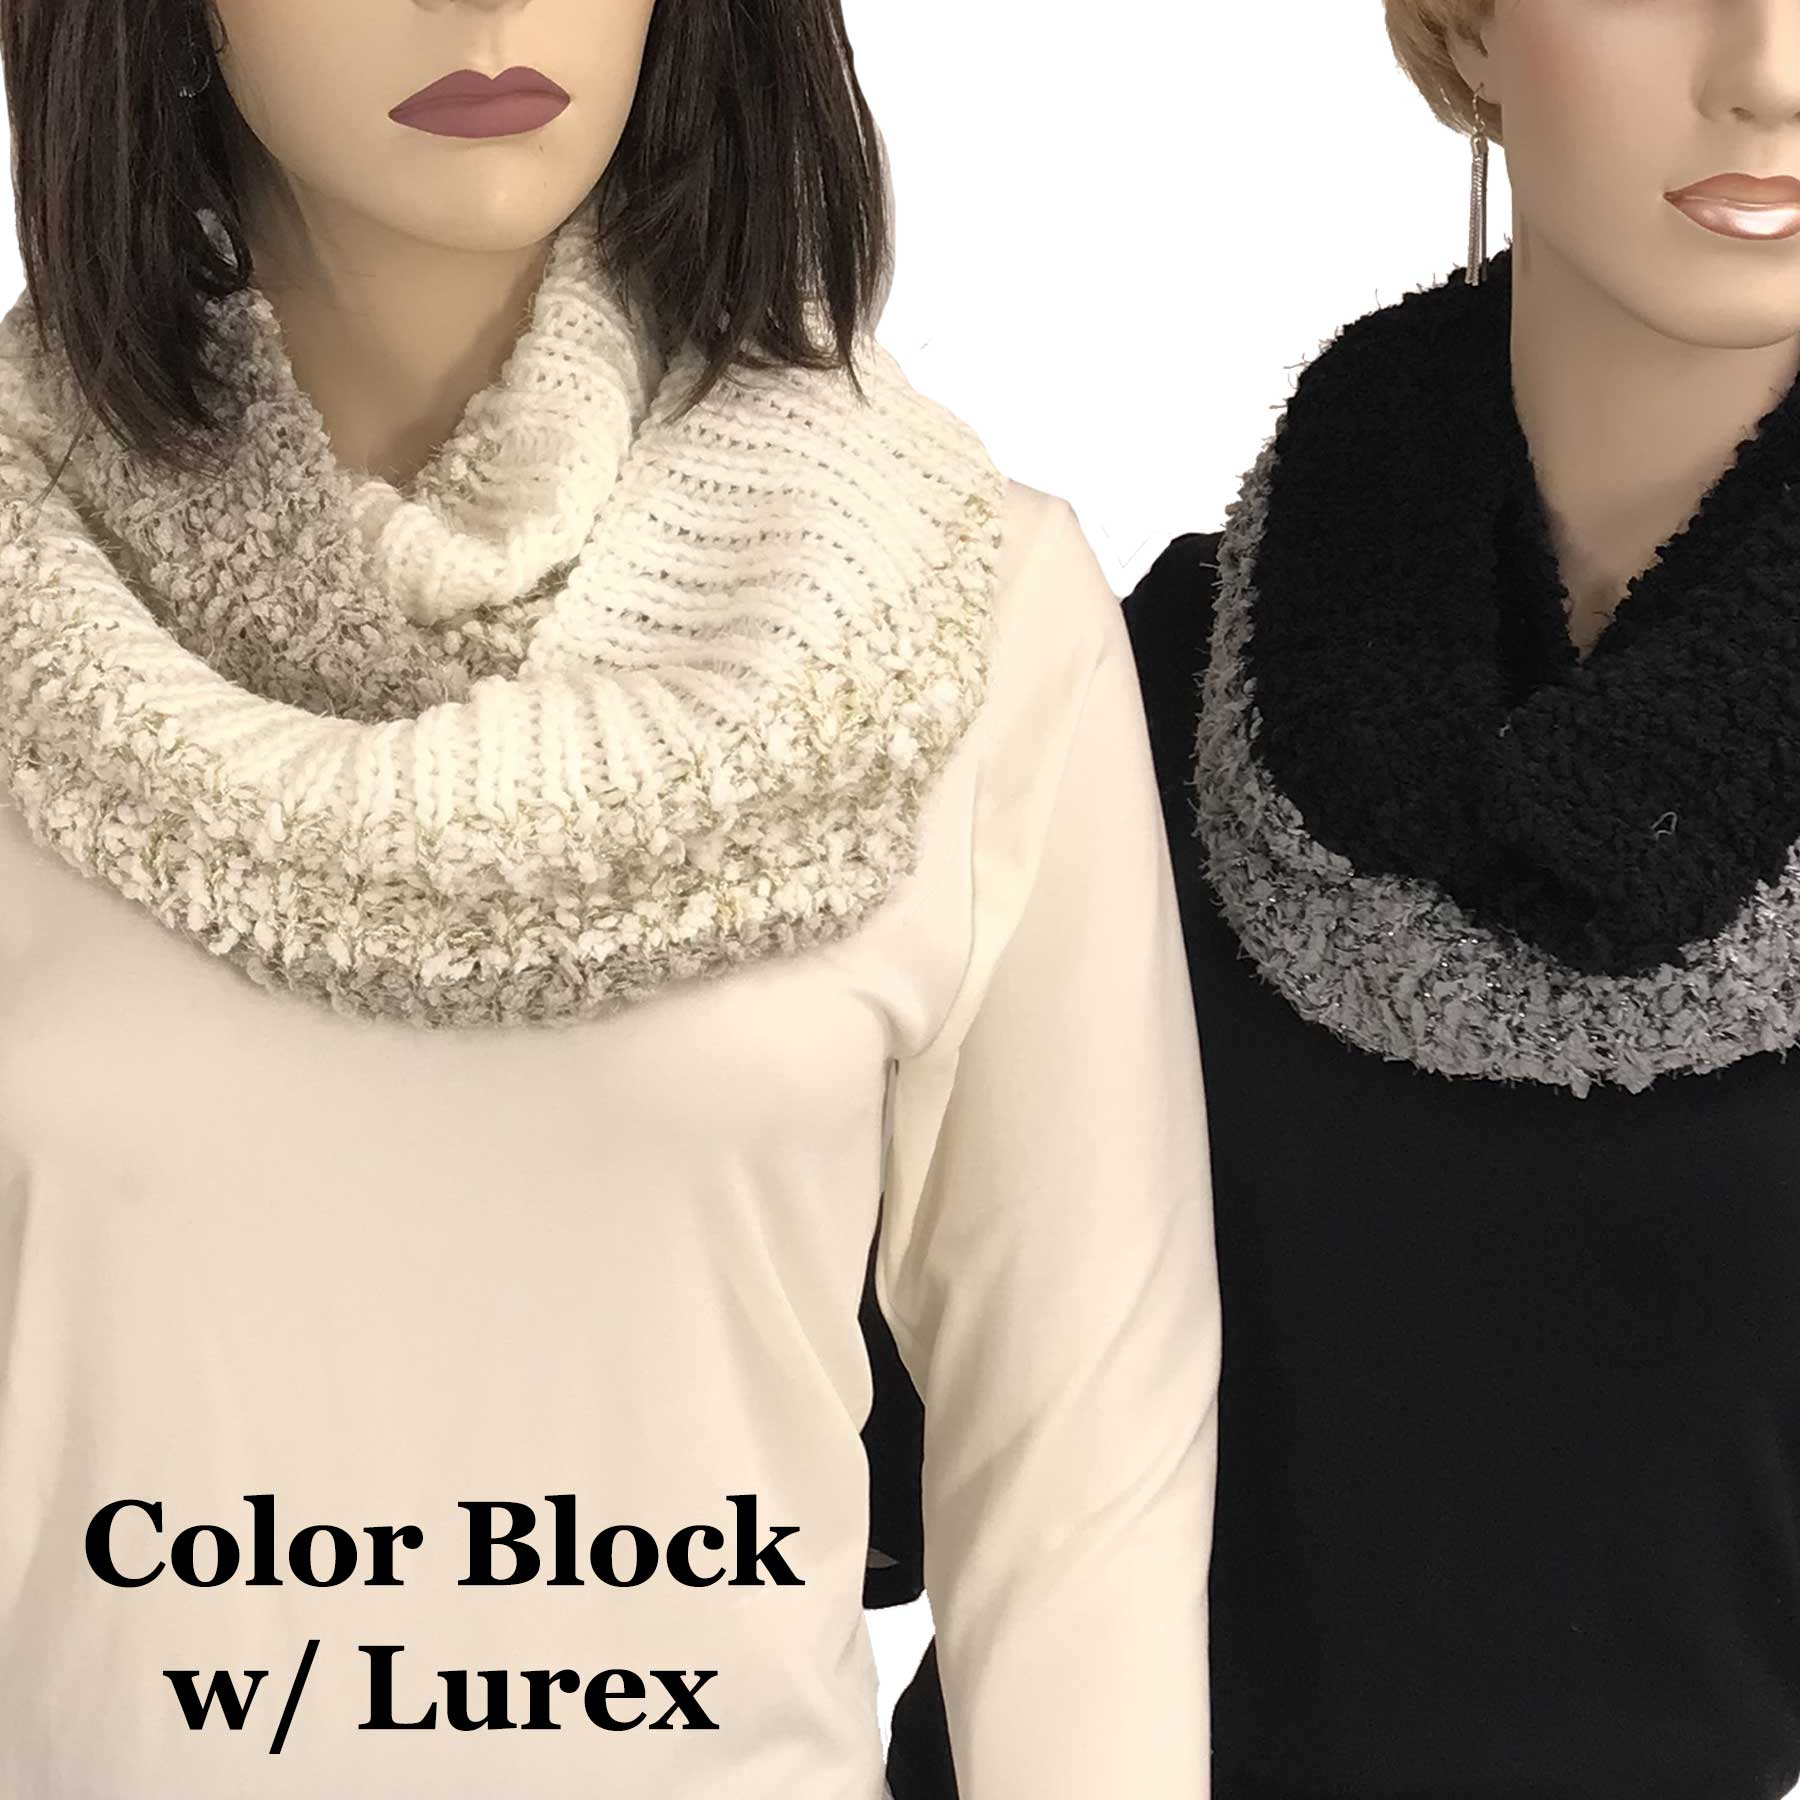 Infinity Scarves - Color Block w/ Lurex 9494